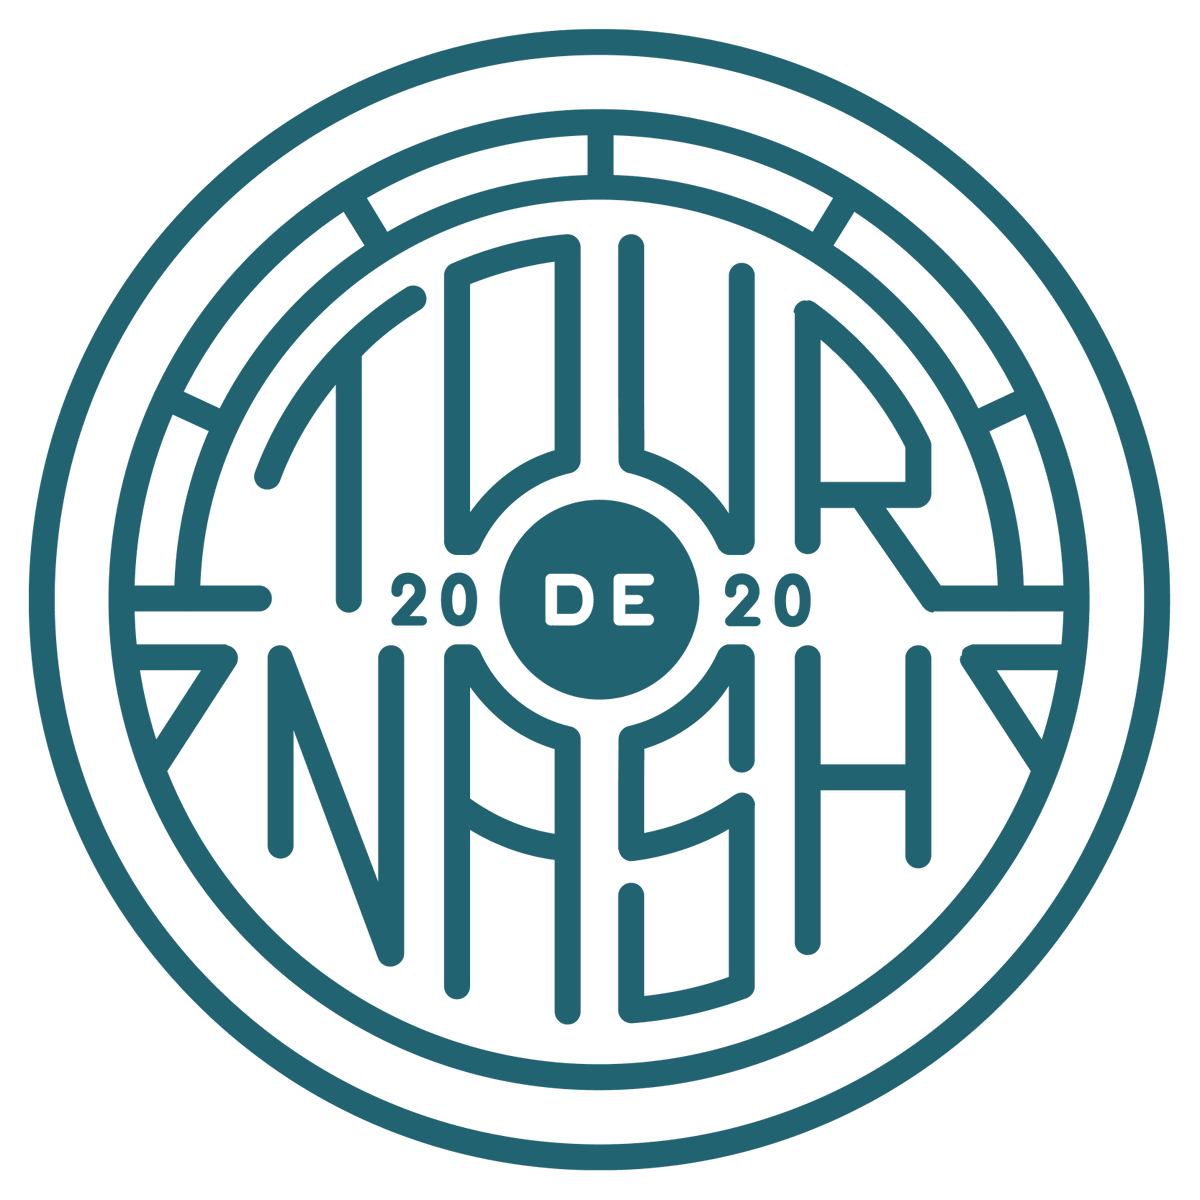 Today's #TourdeNash will look very different this year. Multiple starts spread out across Nashville. No groups. No mass start, or finish festival/post ride meal etc. Masks a must to have.